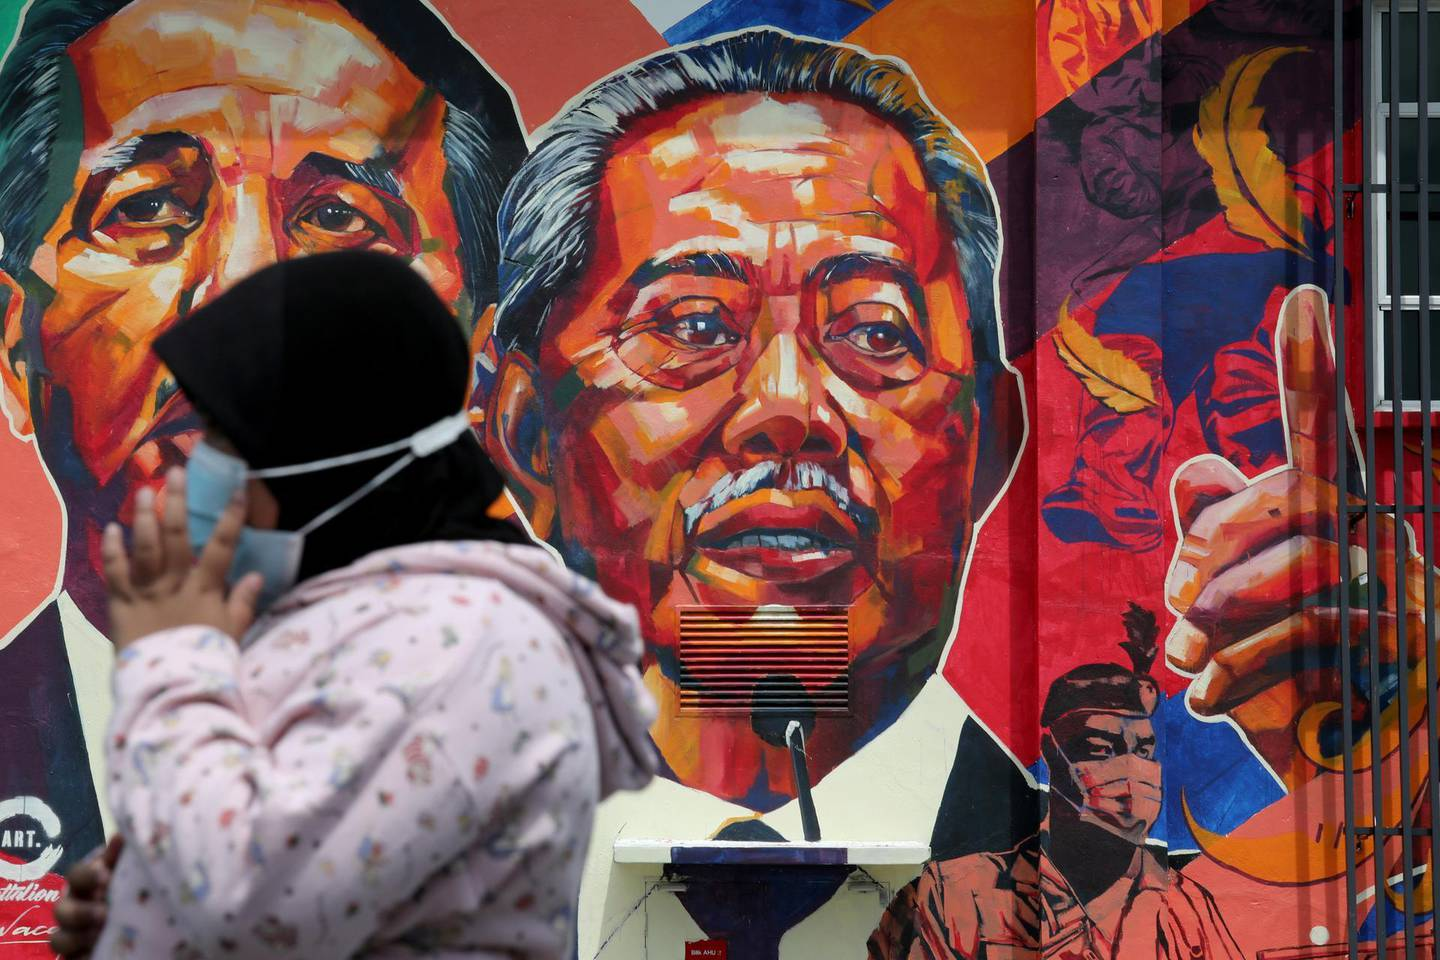 A woman passes by a mural depicting Malaysia's Prime Minister Muhyiddin Yassin in Kuala Lumpur, Malaysia October 27, 2020. REUTERS/Lim Huey Teng